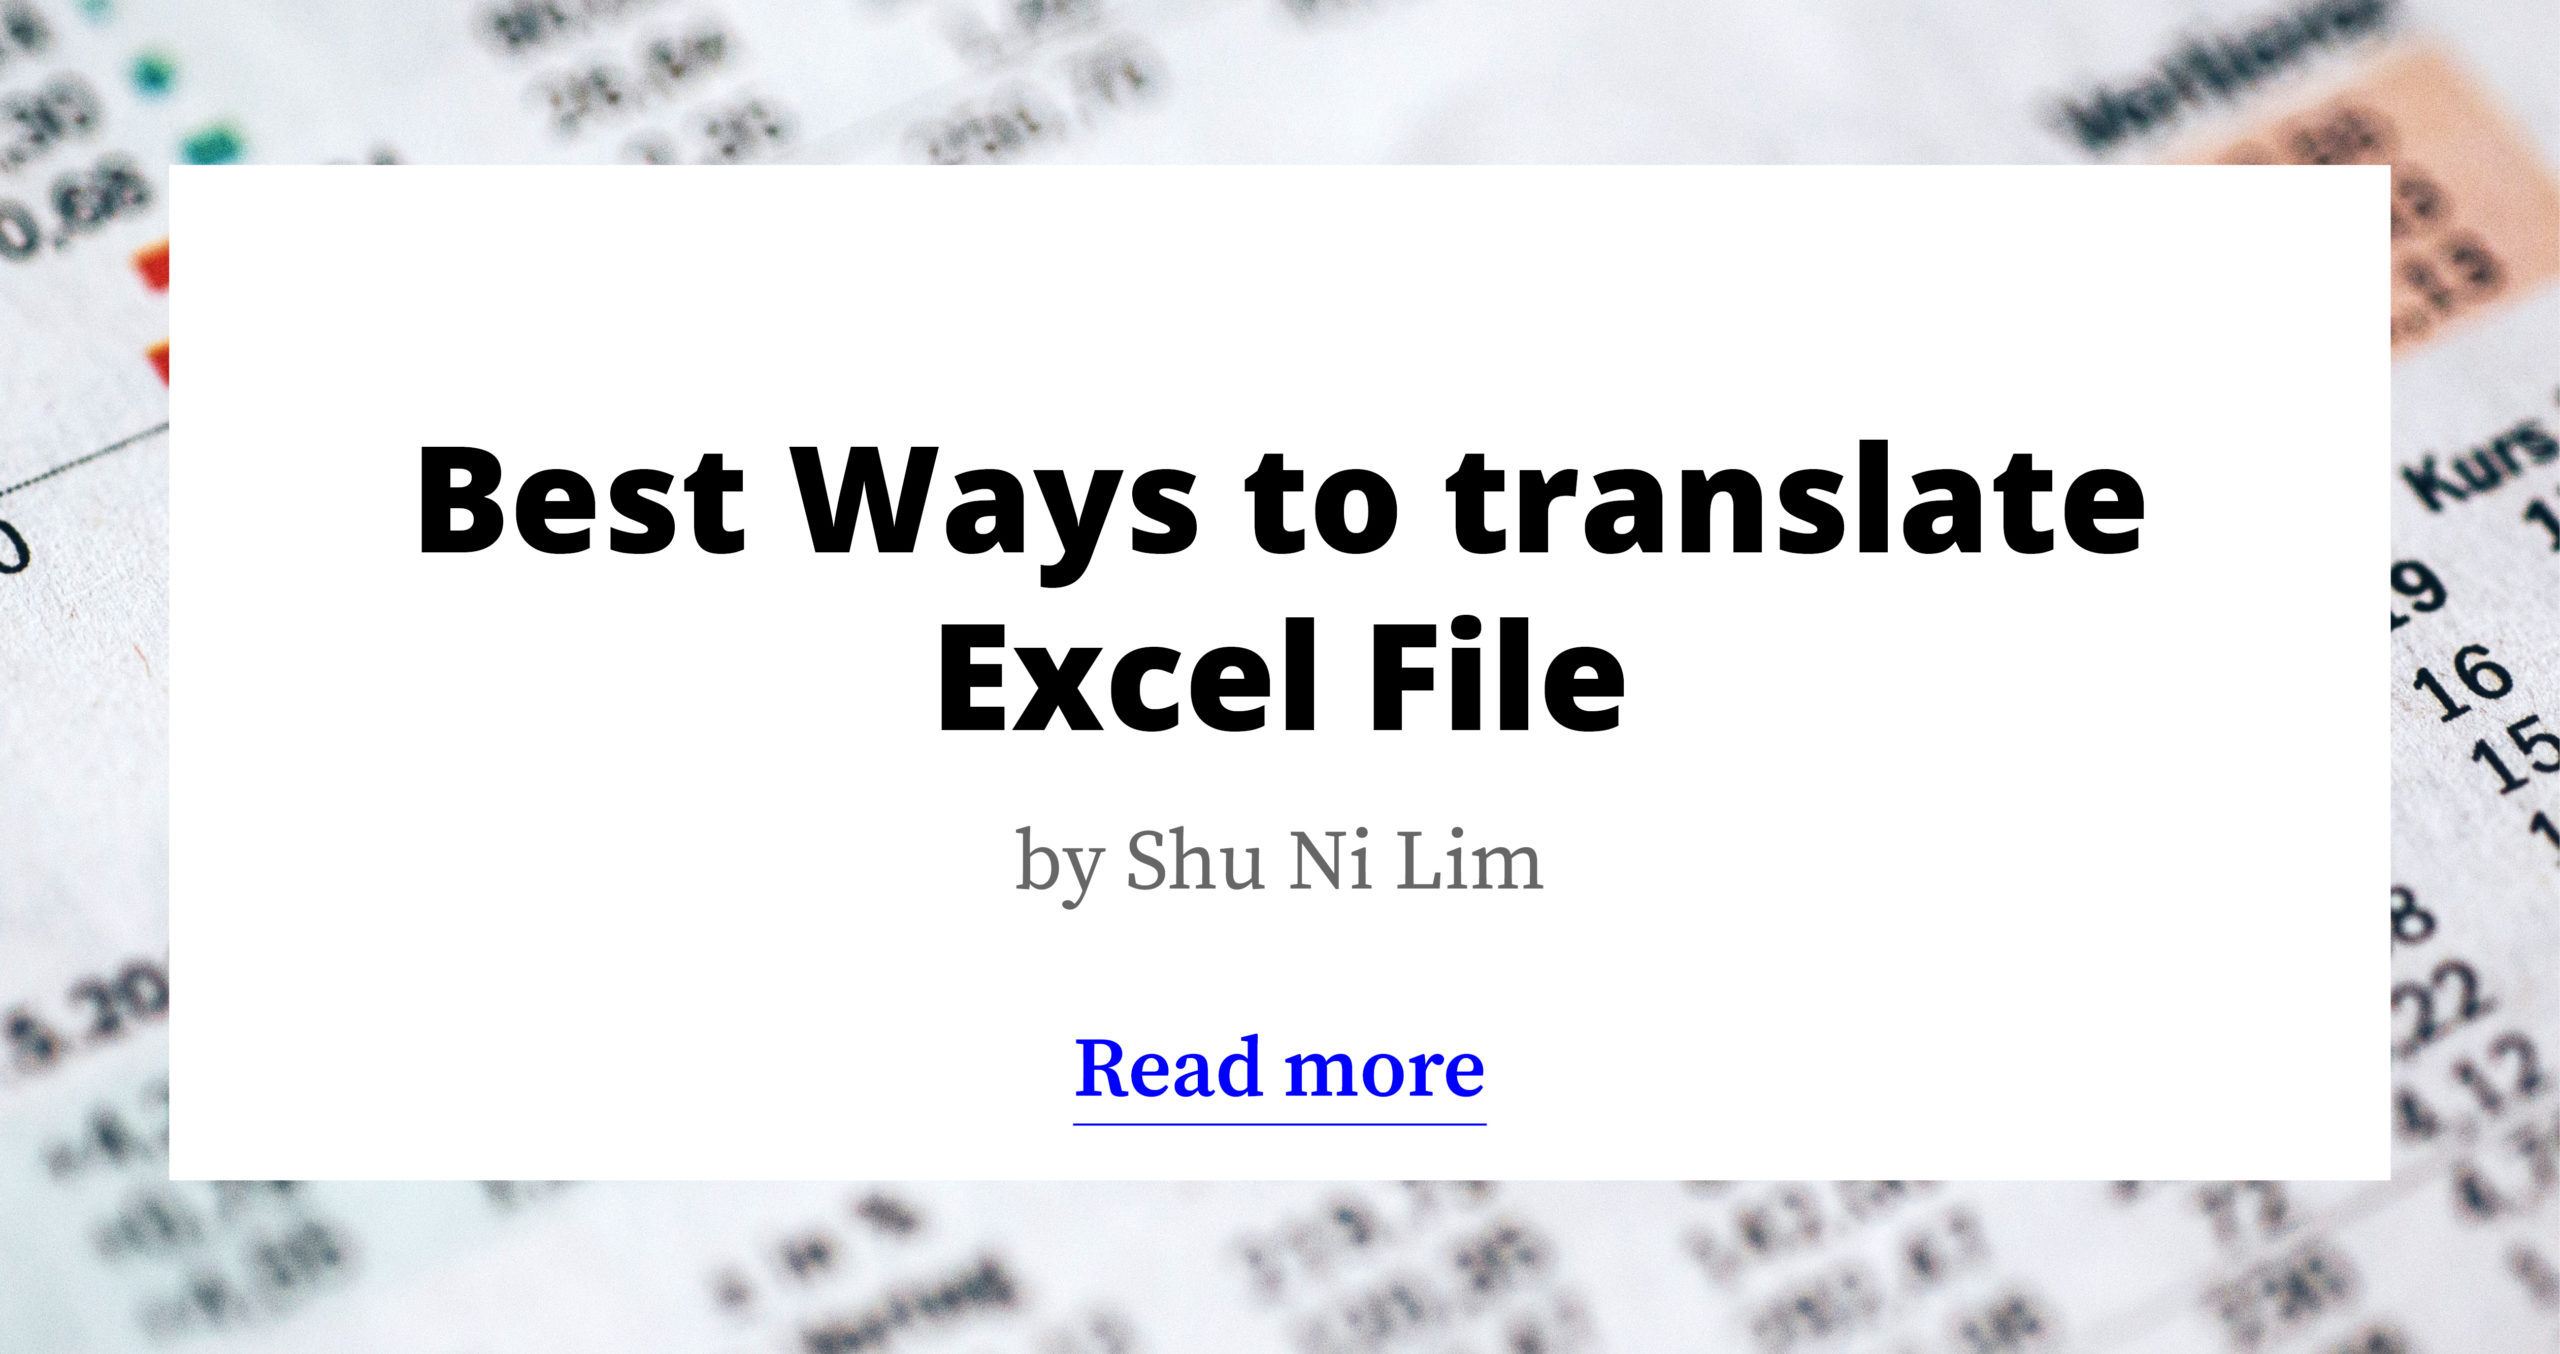 Best Ways to Translate an Excel File - 2021 Update